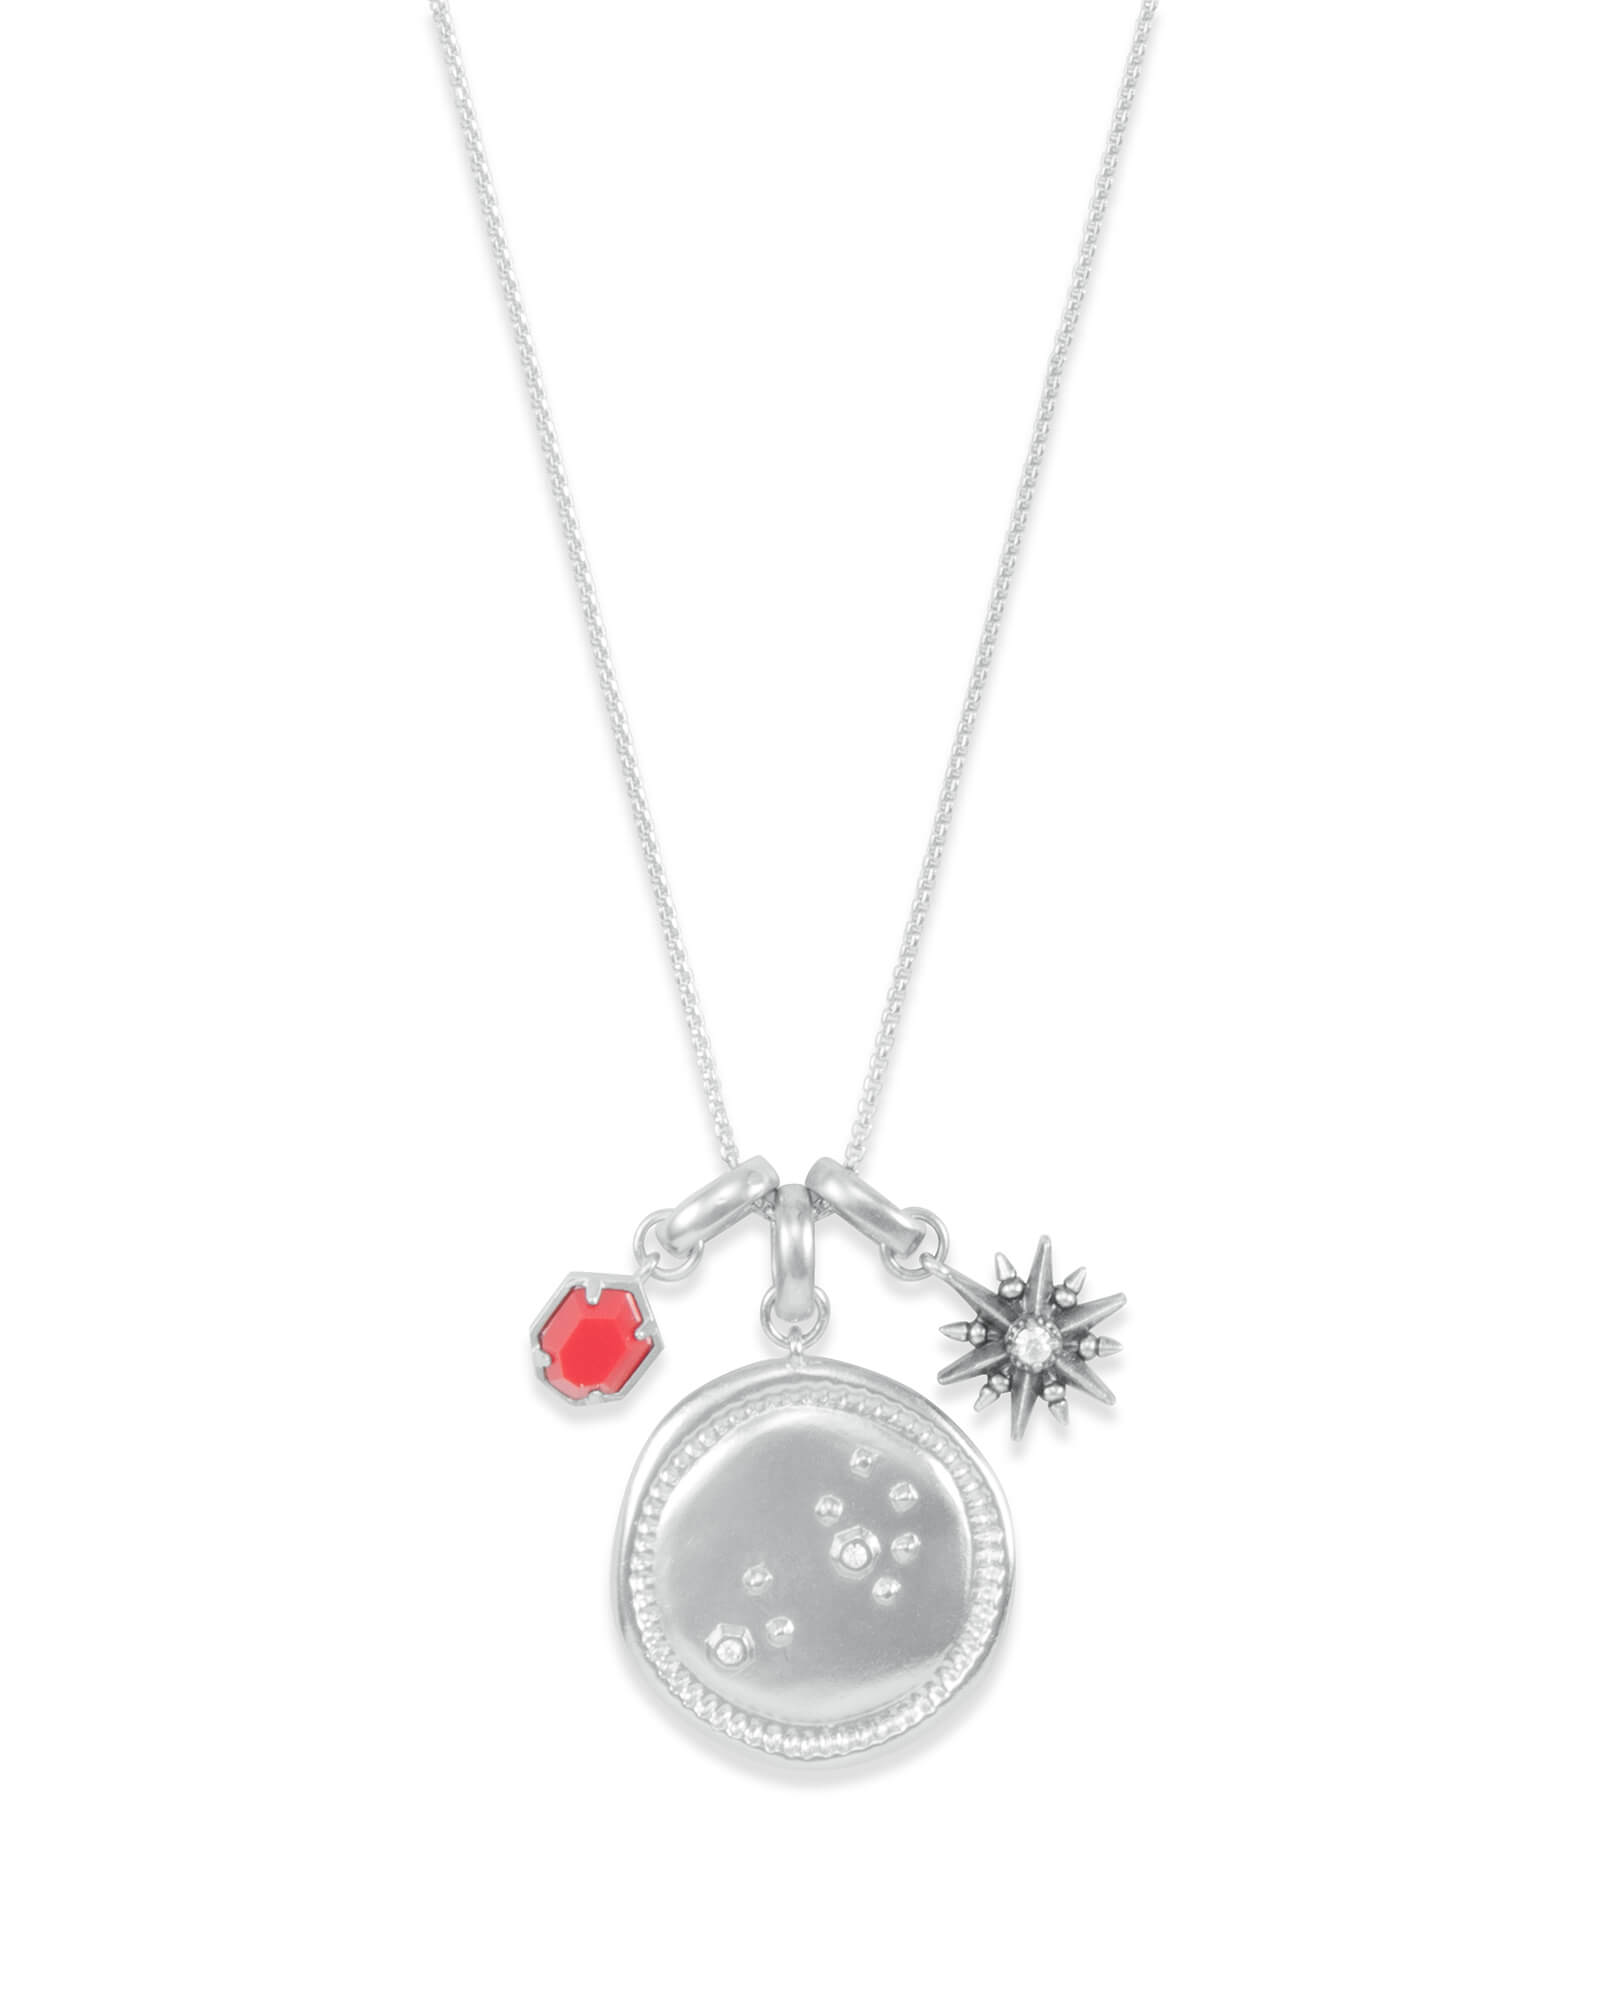 July Leo Charm Necklace Set in Silver